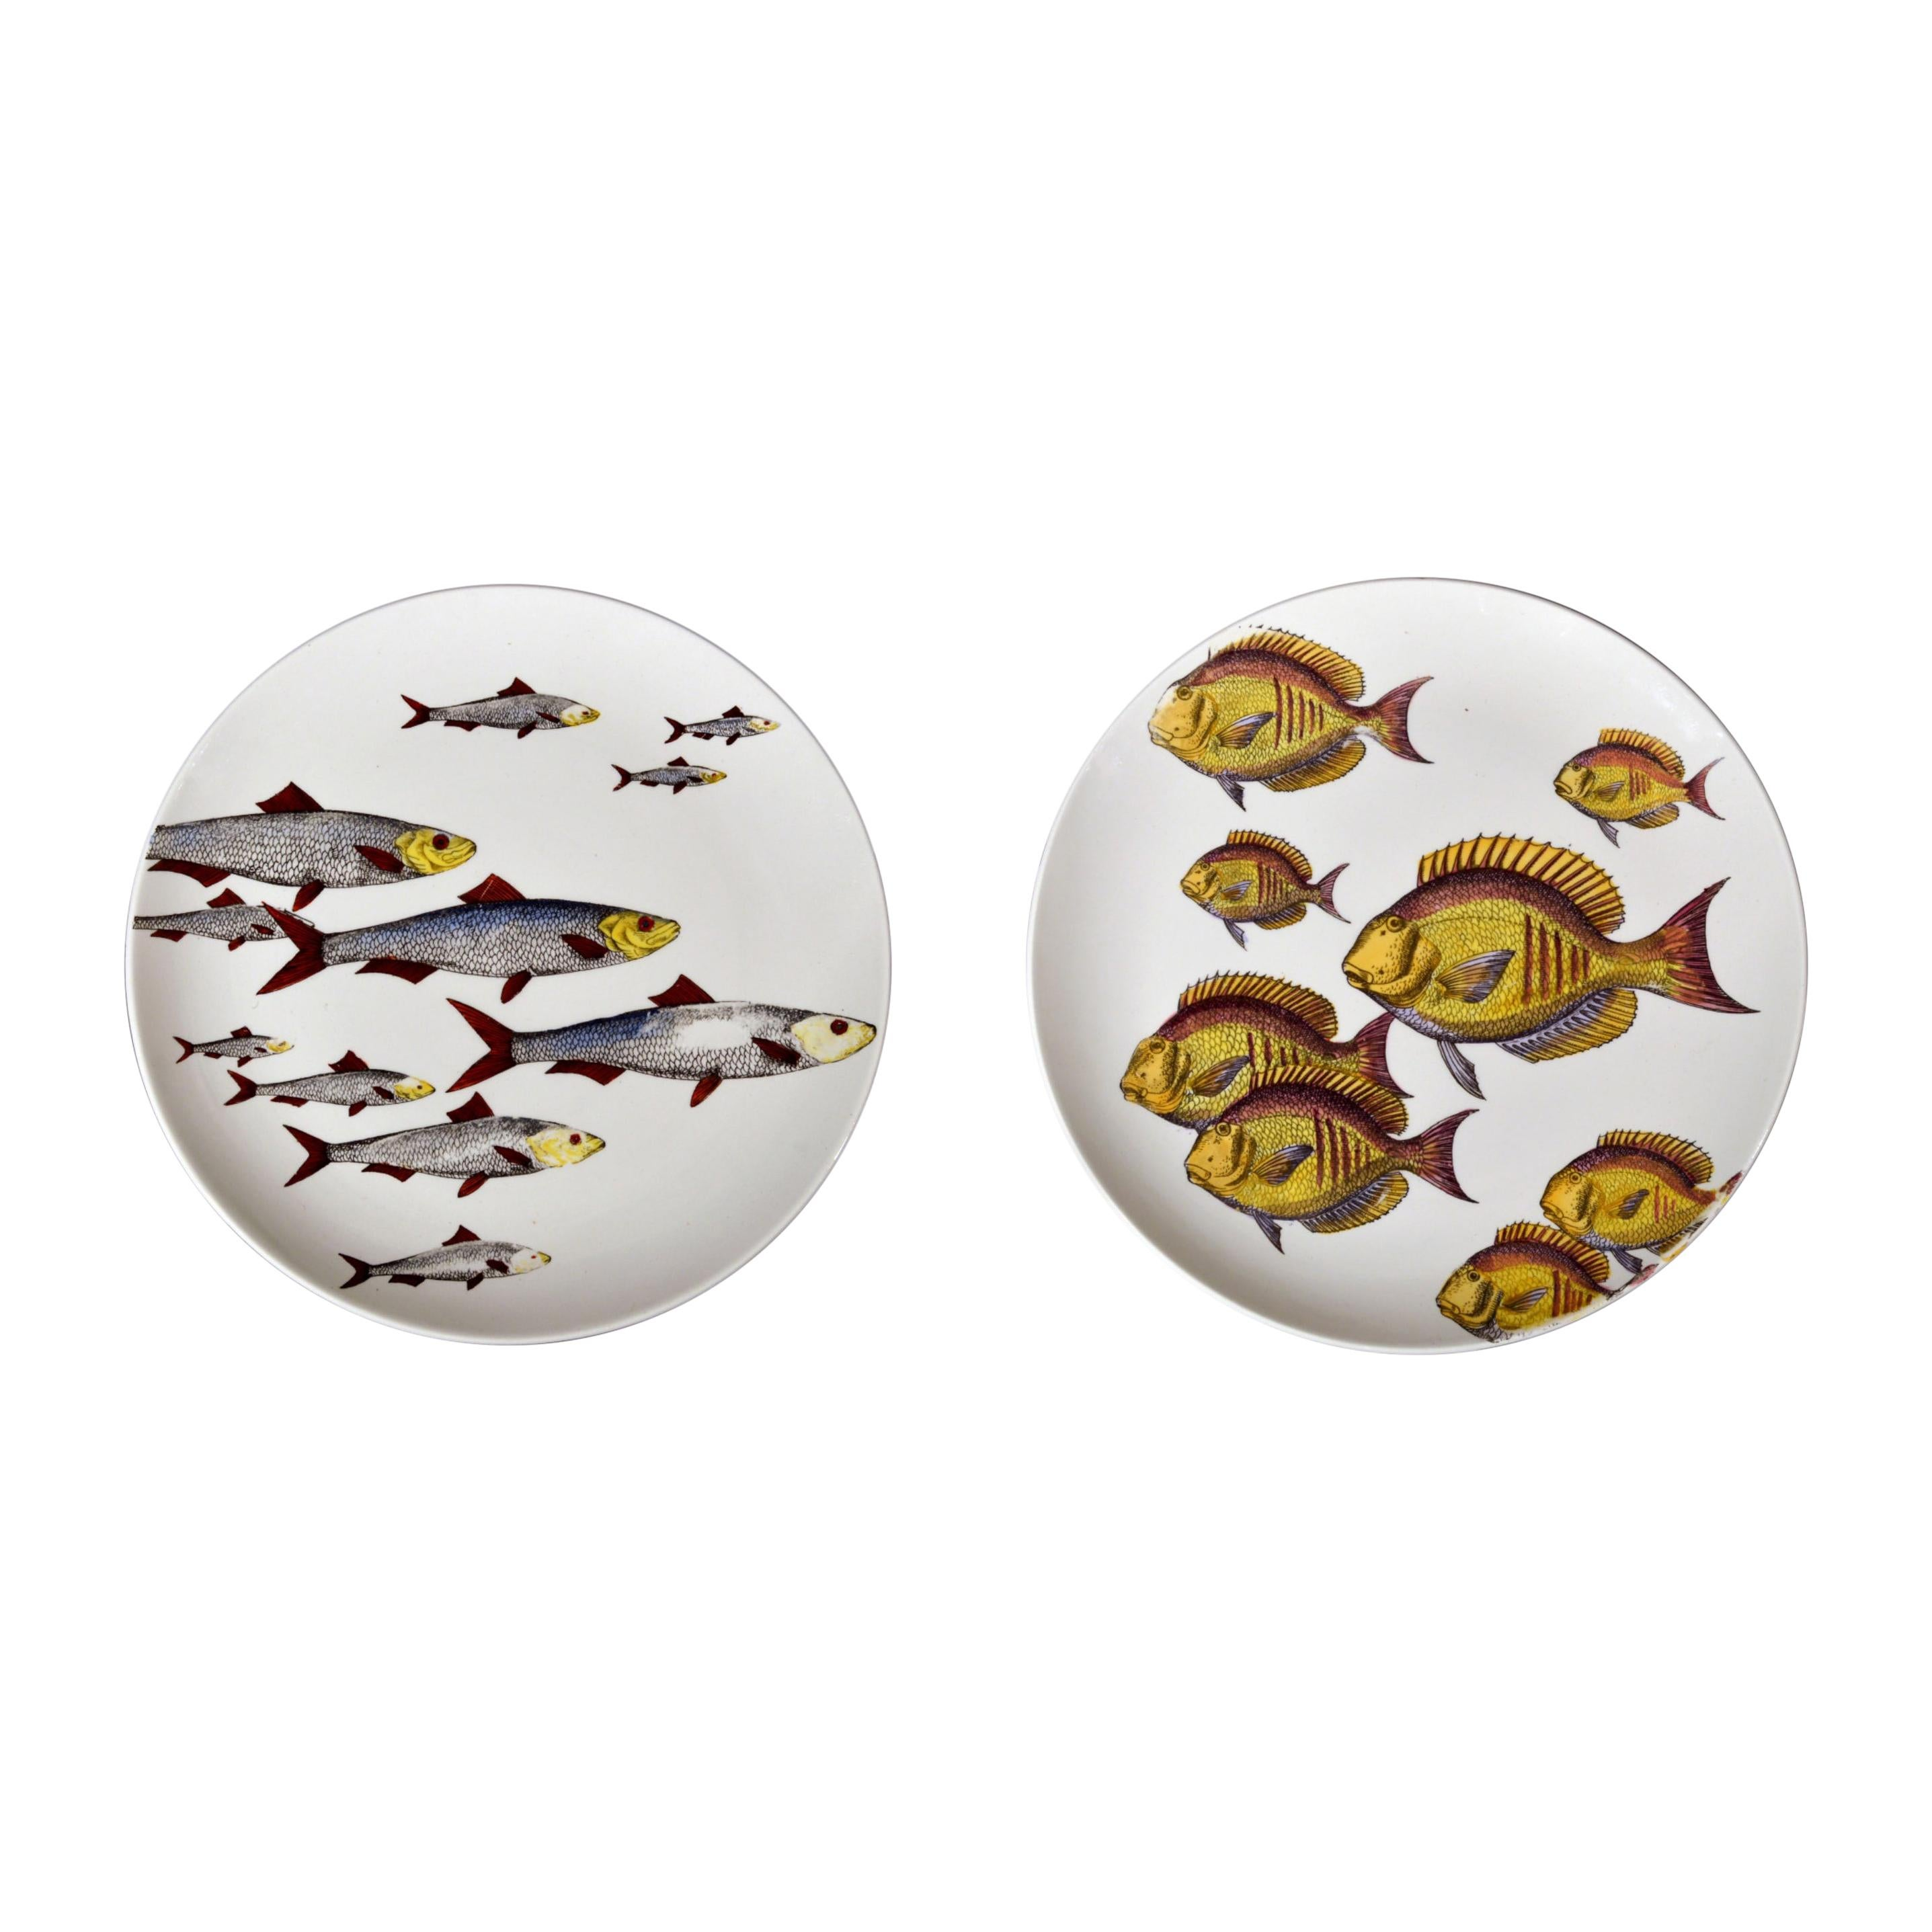 Pair of Rare Piero Fornasetti Fish Plates, Pesci Pattern or Passage of Fish